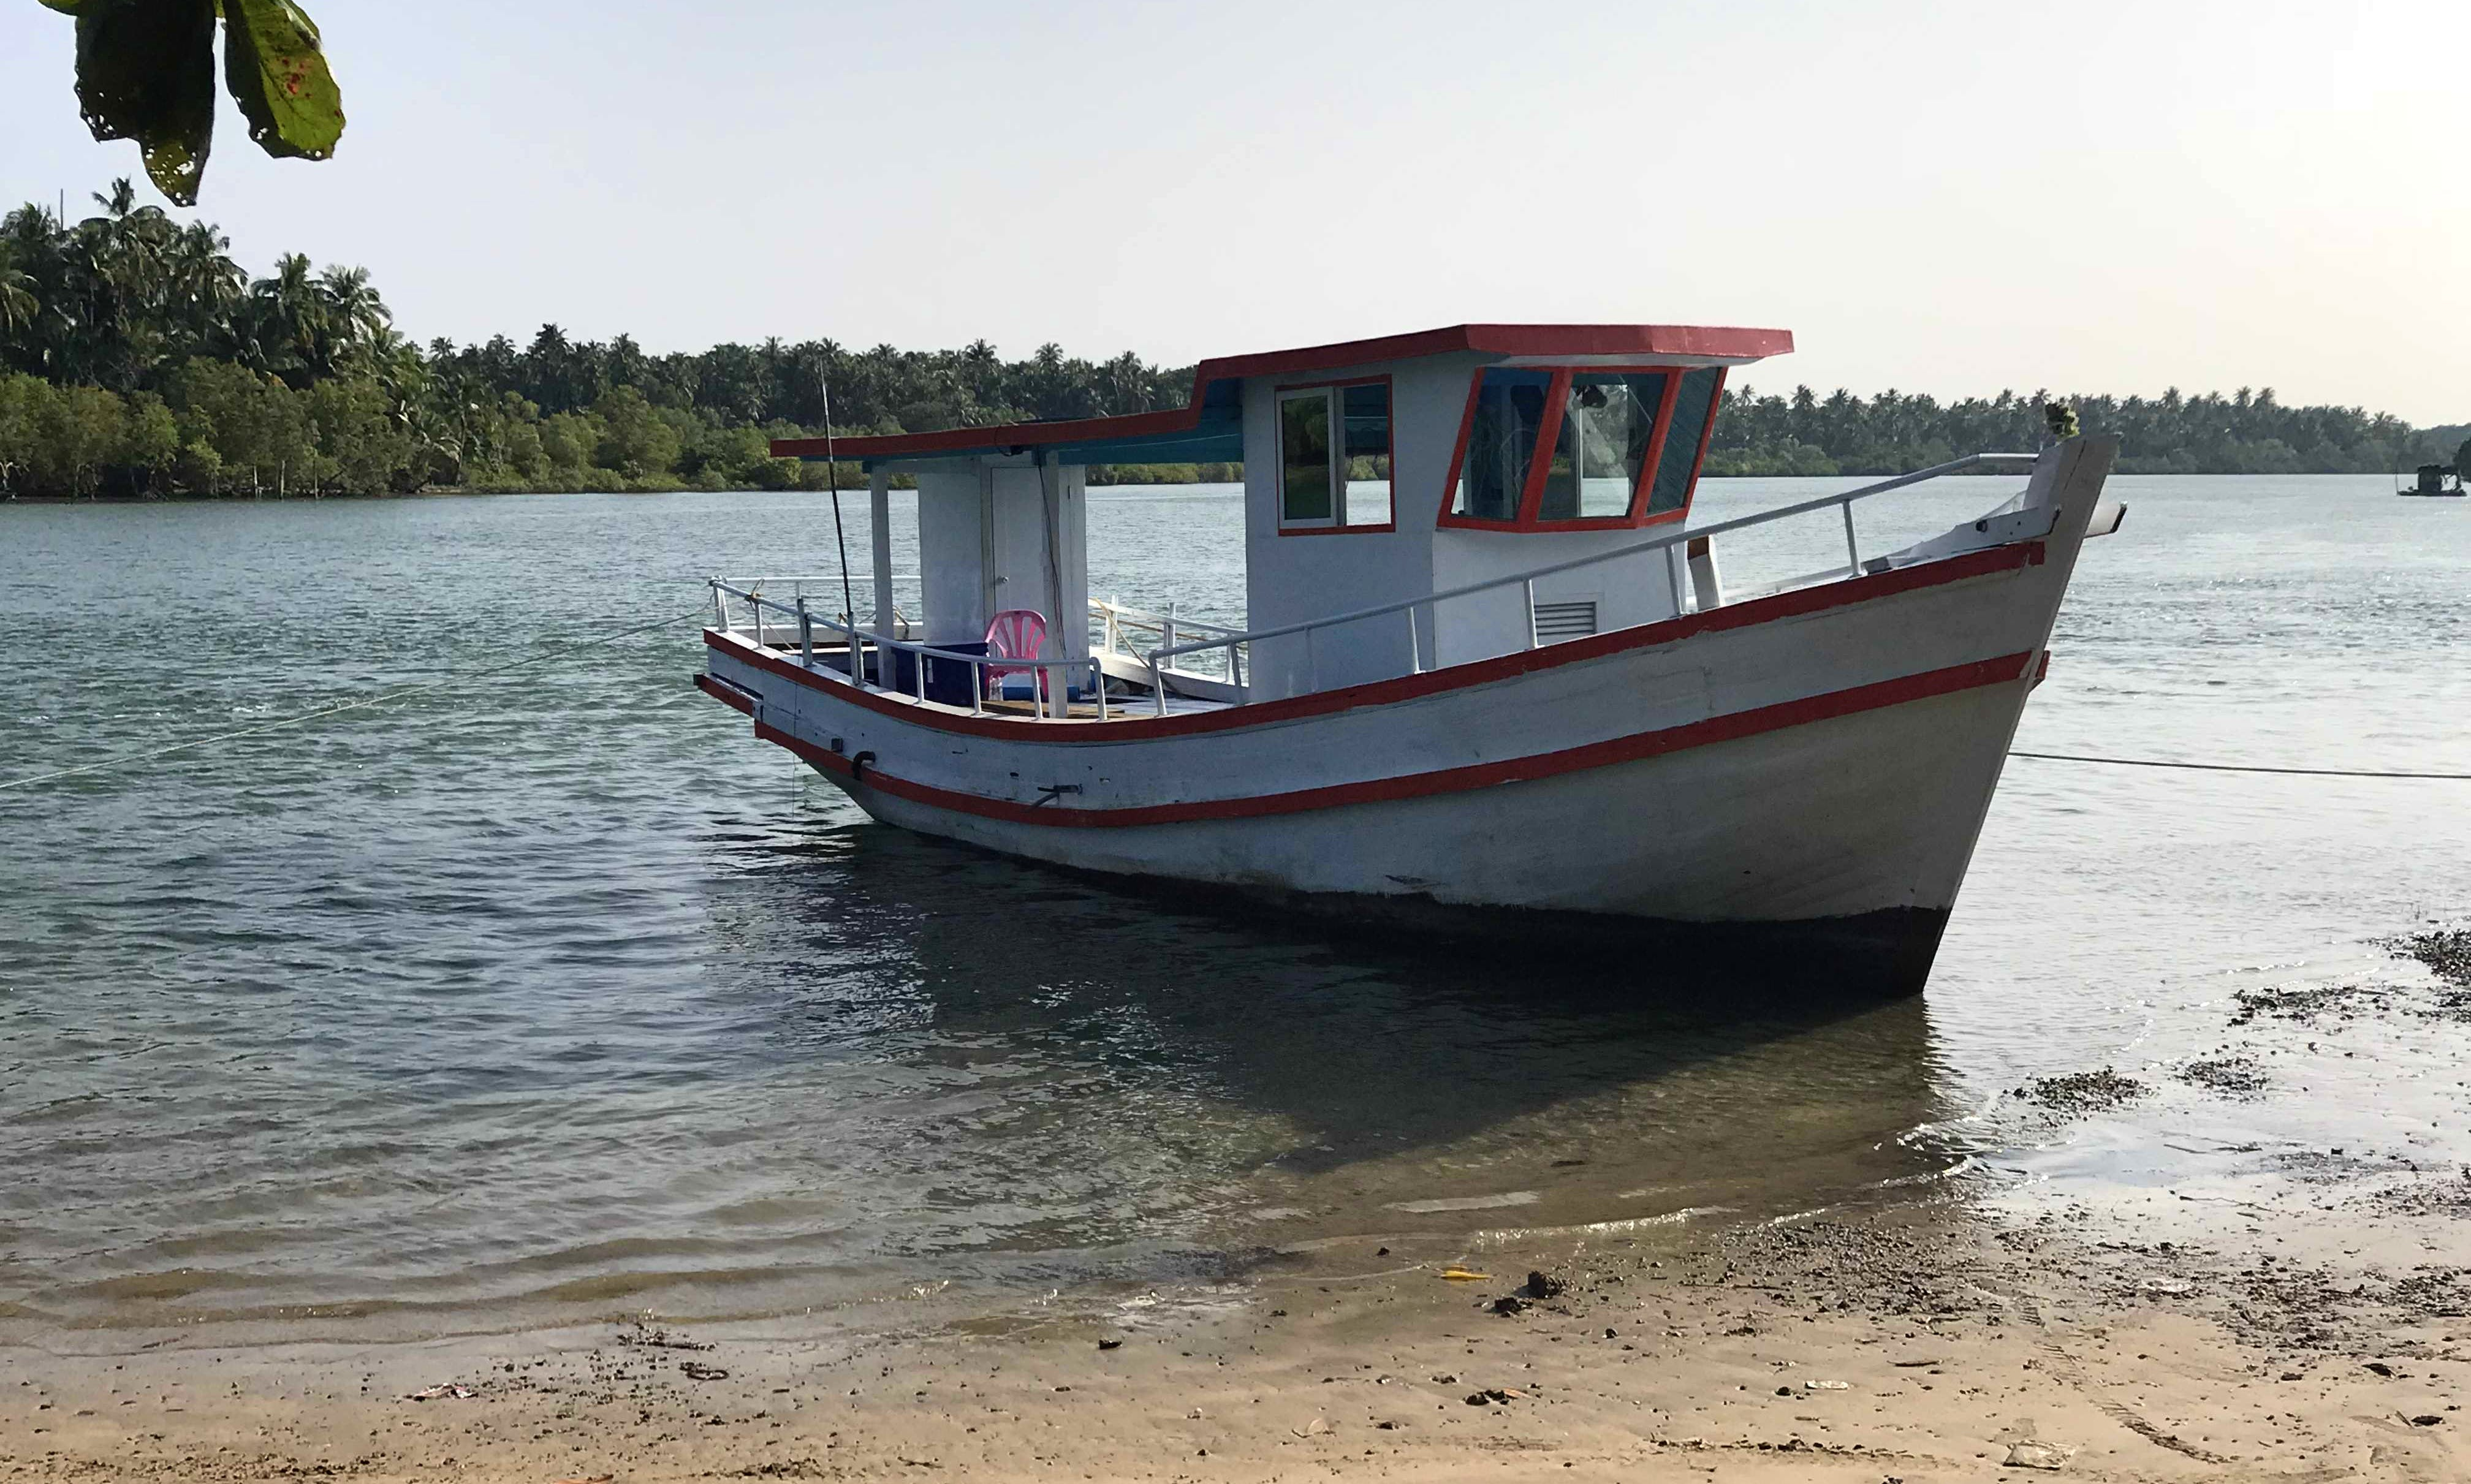 40ft Trawler Fishing Charter for 5 People in Ngwesaung, Myanmar